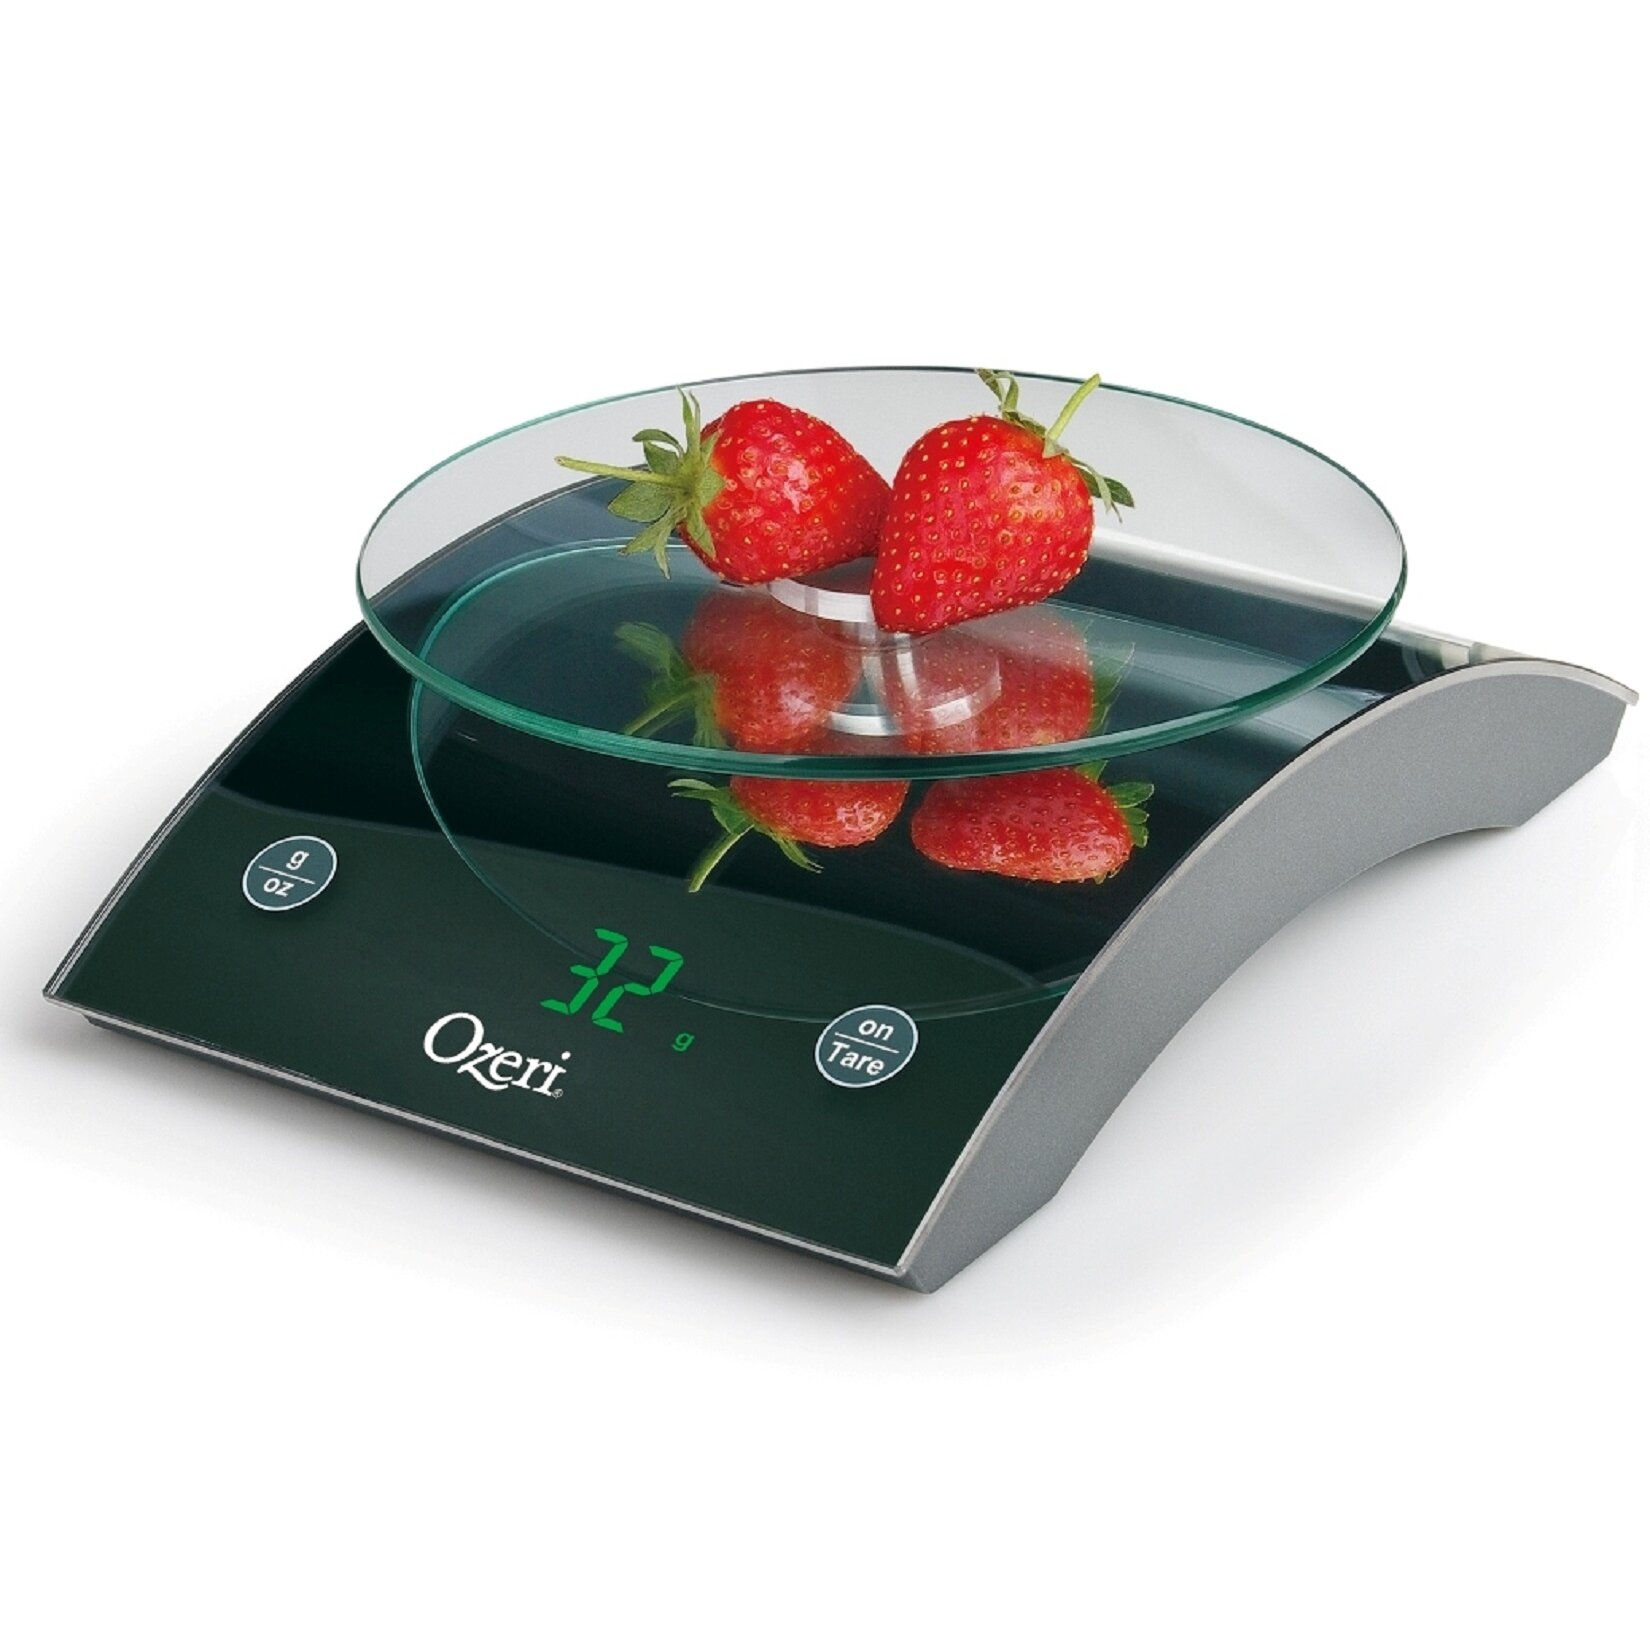 Image result for ozeri epicurean digital kitchen scale